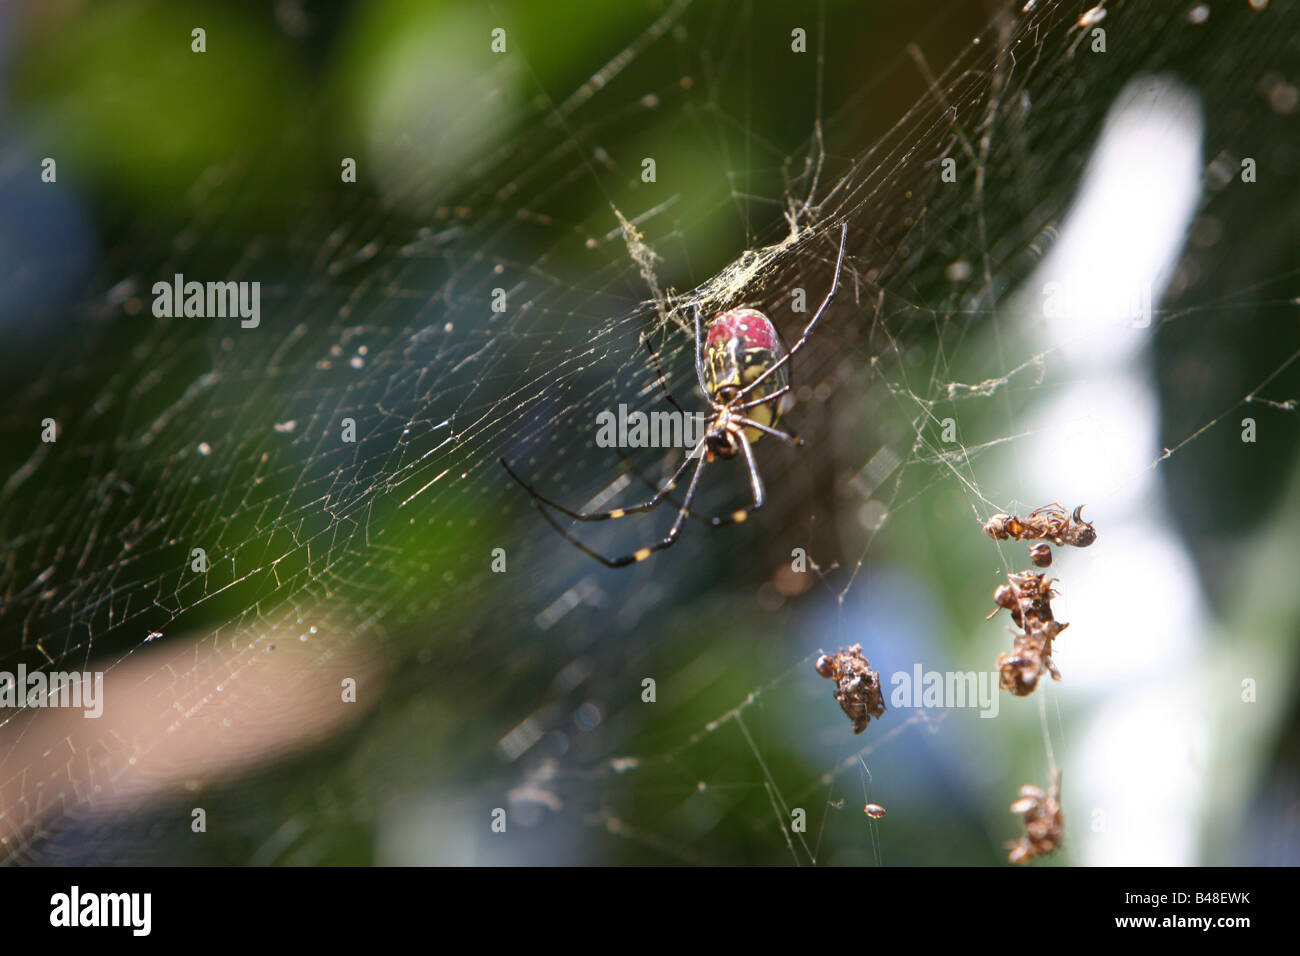 Spider web close up - Stock Image